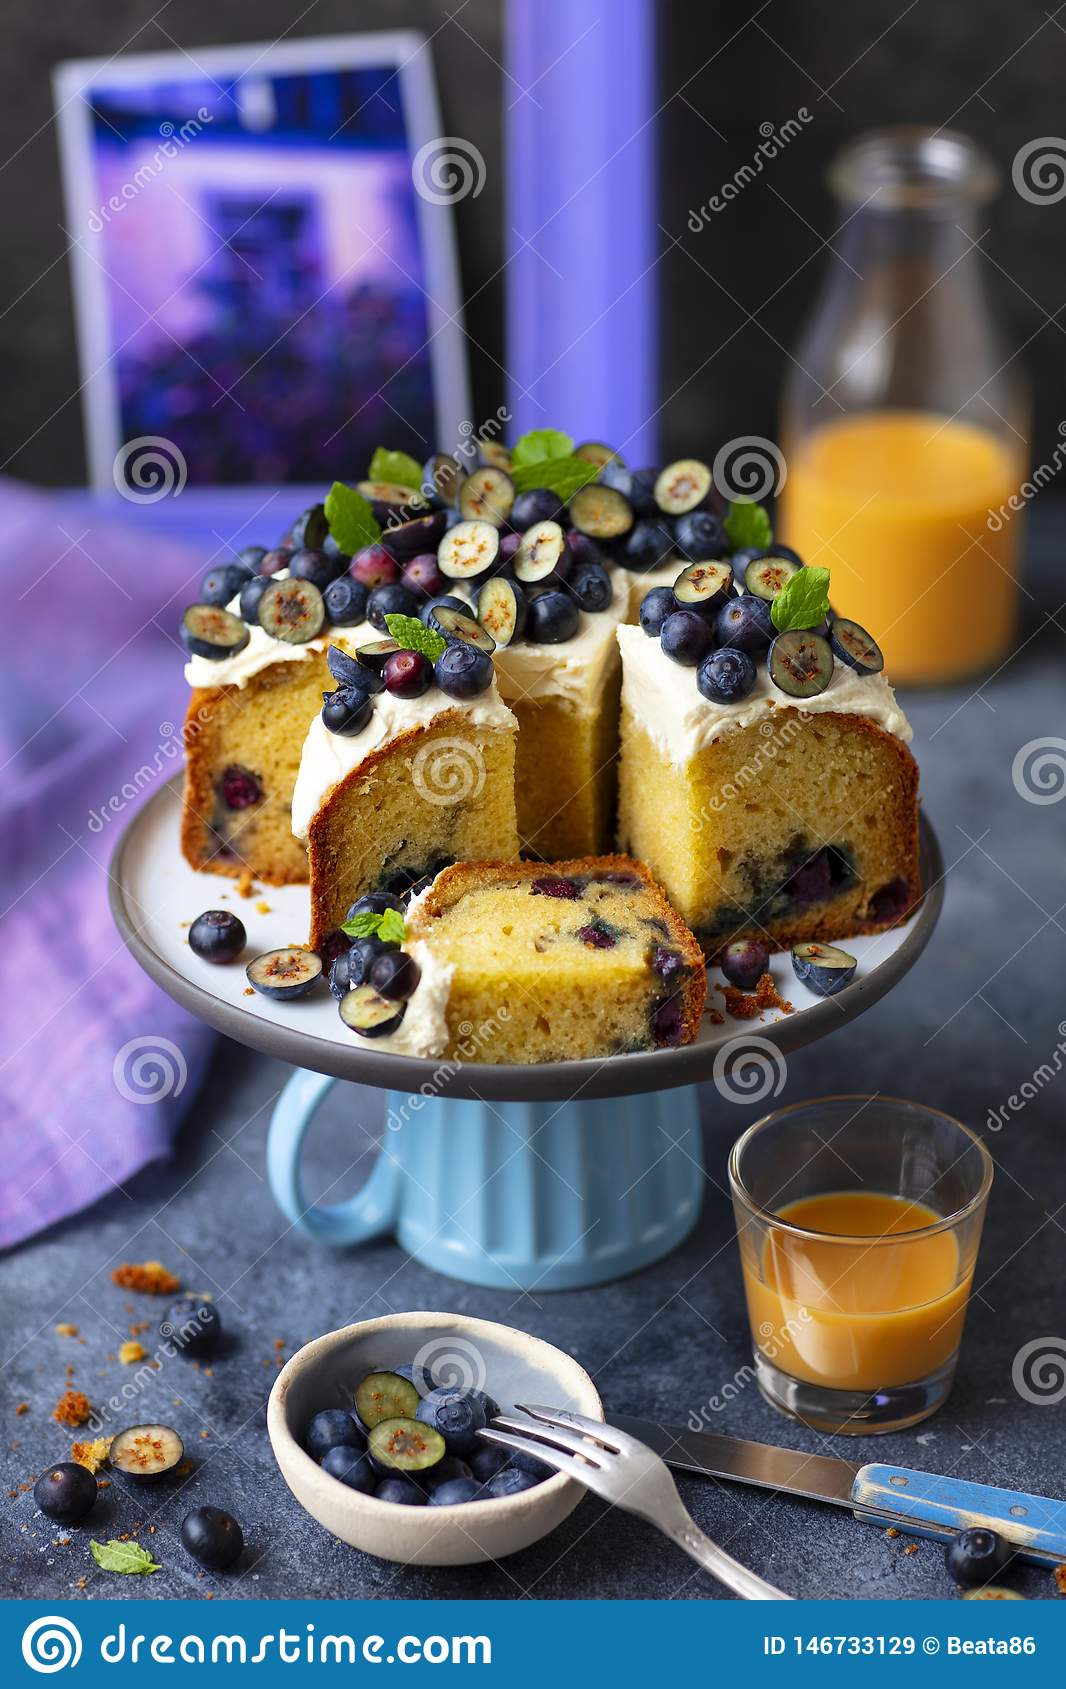 Muffin cake with cream cheese frosting and blueberries